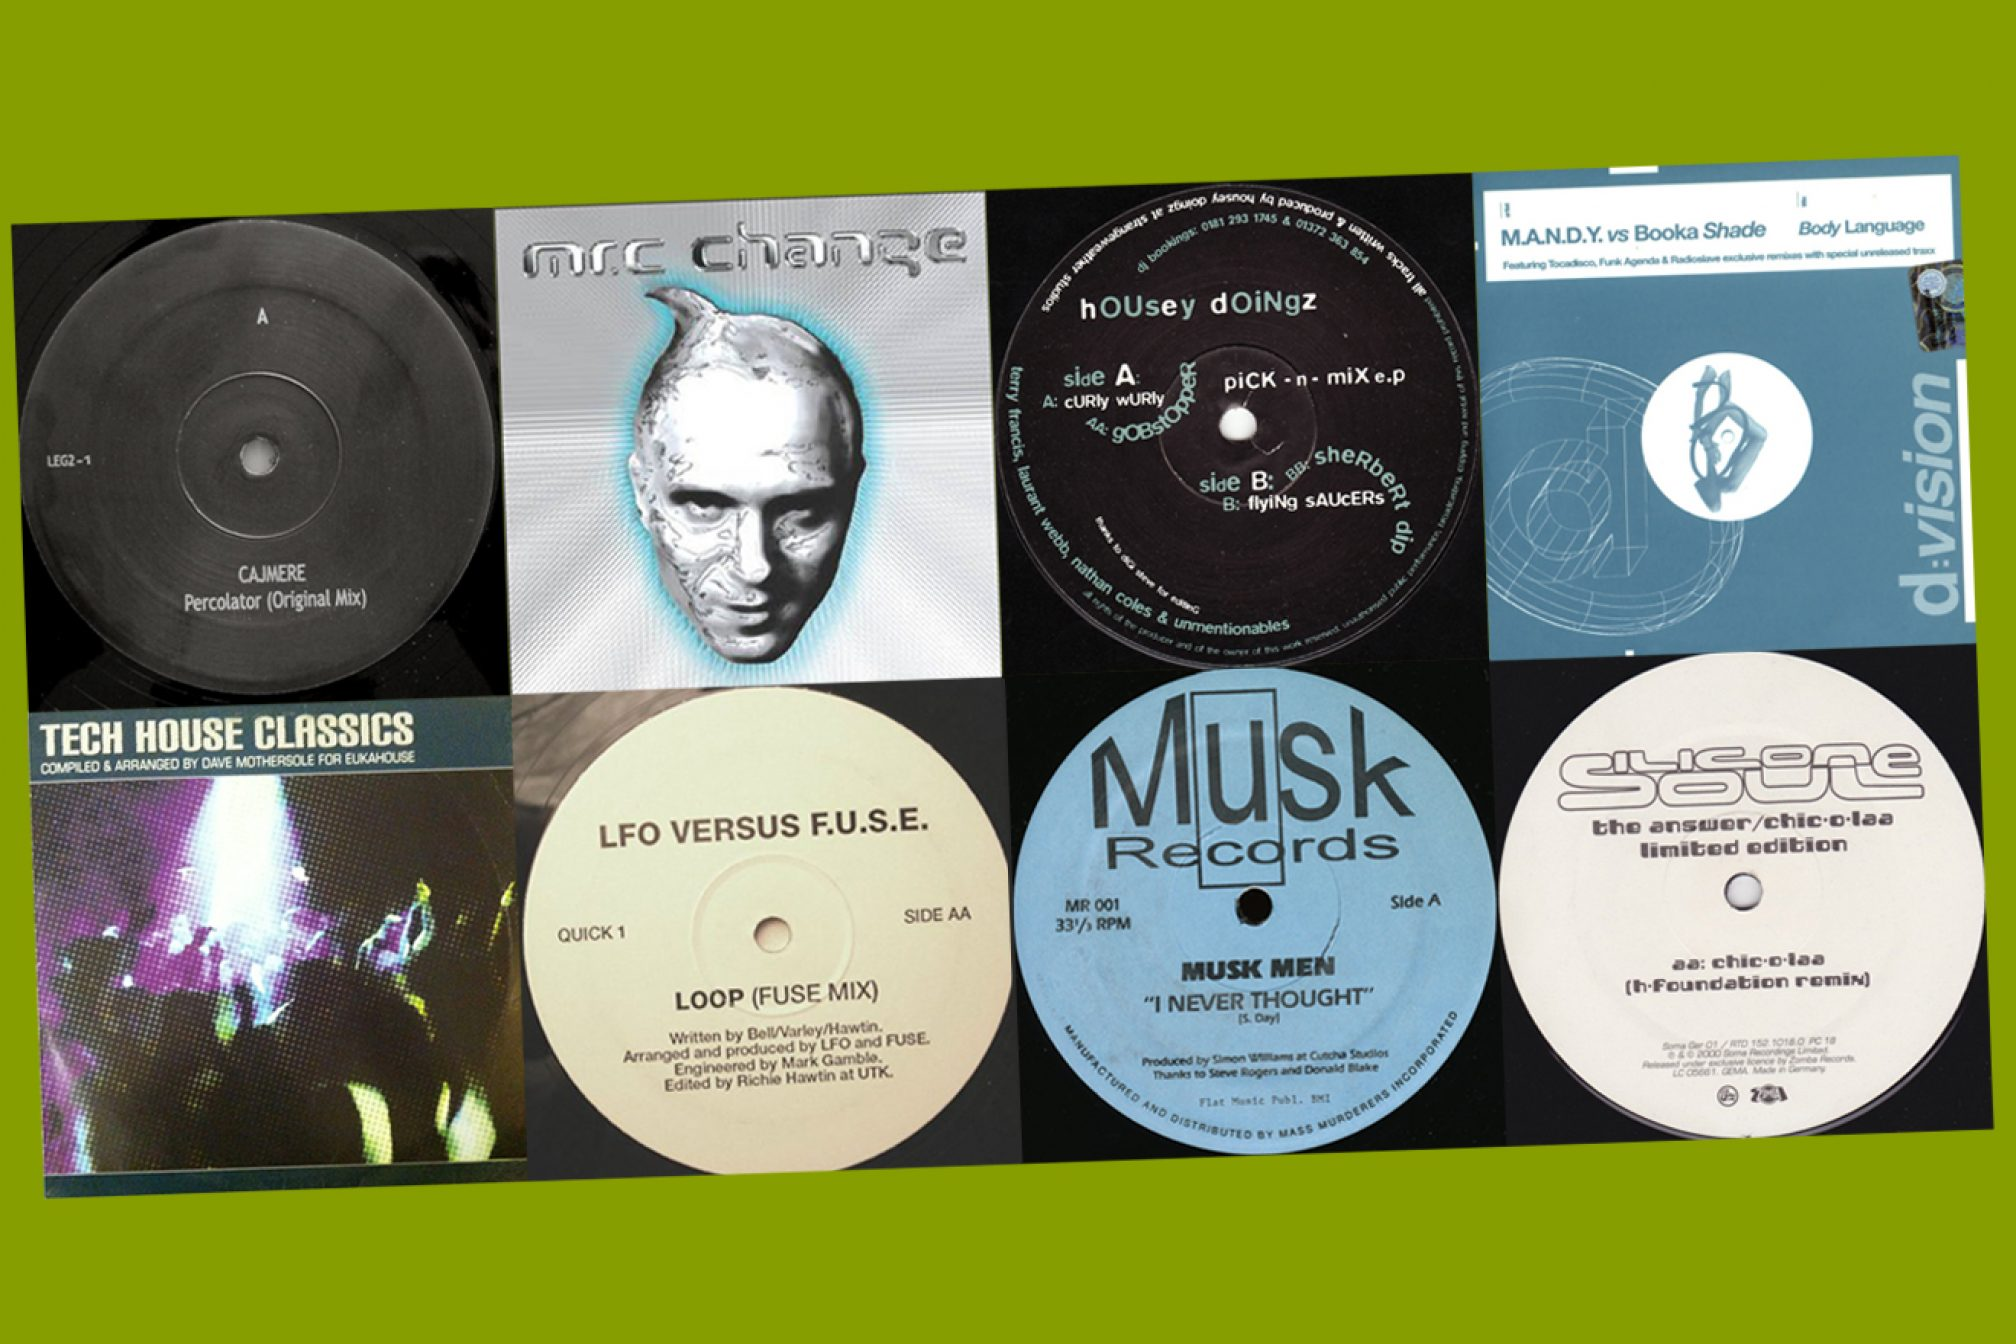 The 10 best pre-2005 tracks that invented tech-house - Lists